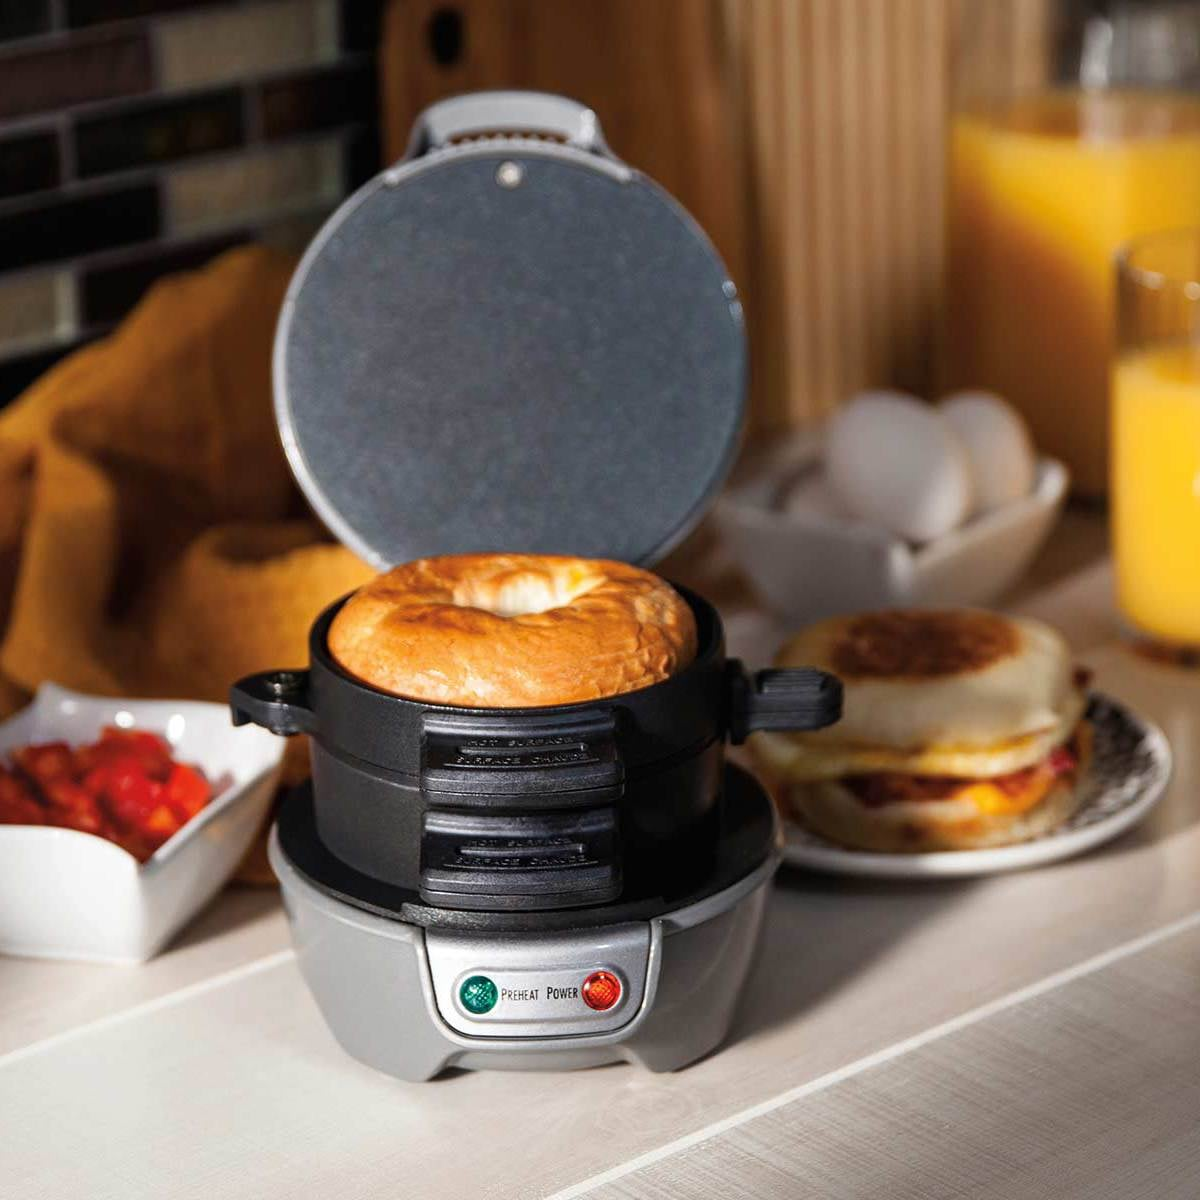 Breakfast-Sandwich-Maker 25+ Best Brother Gift Ideas to Give on His Birthday 2020/2021